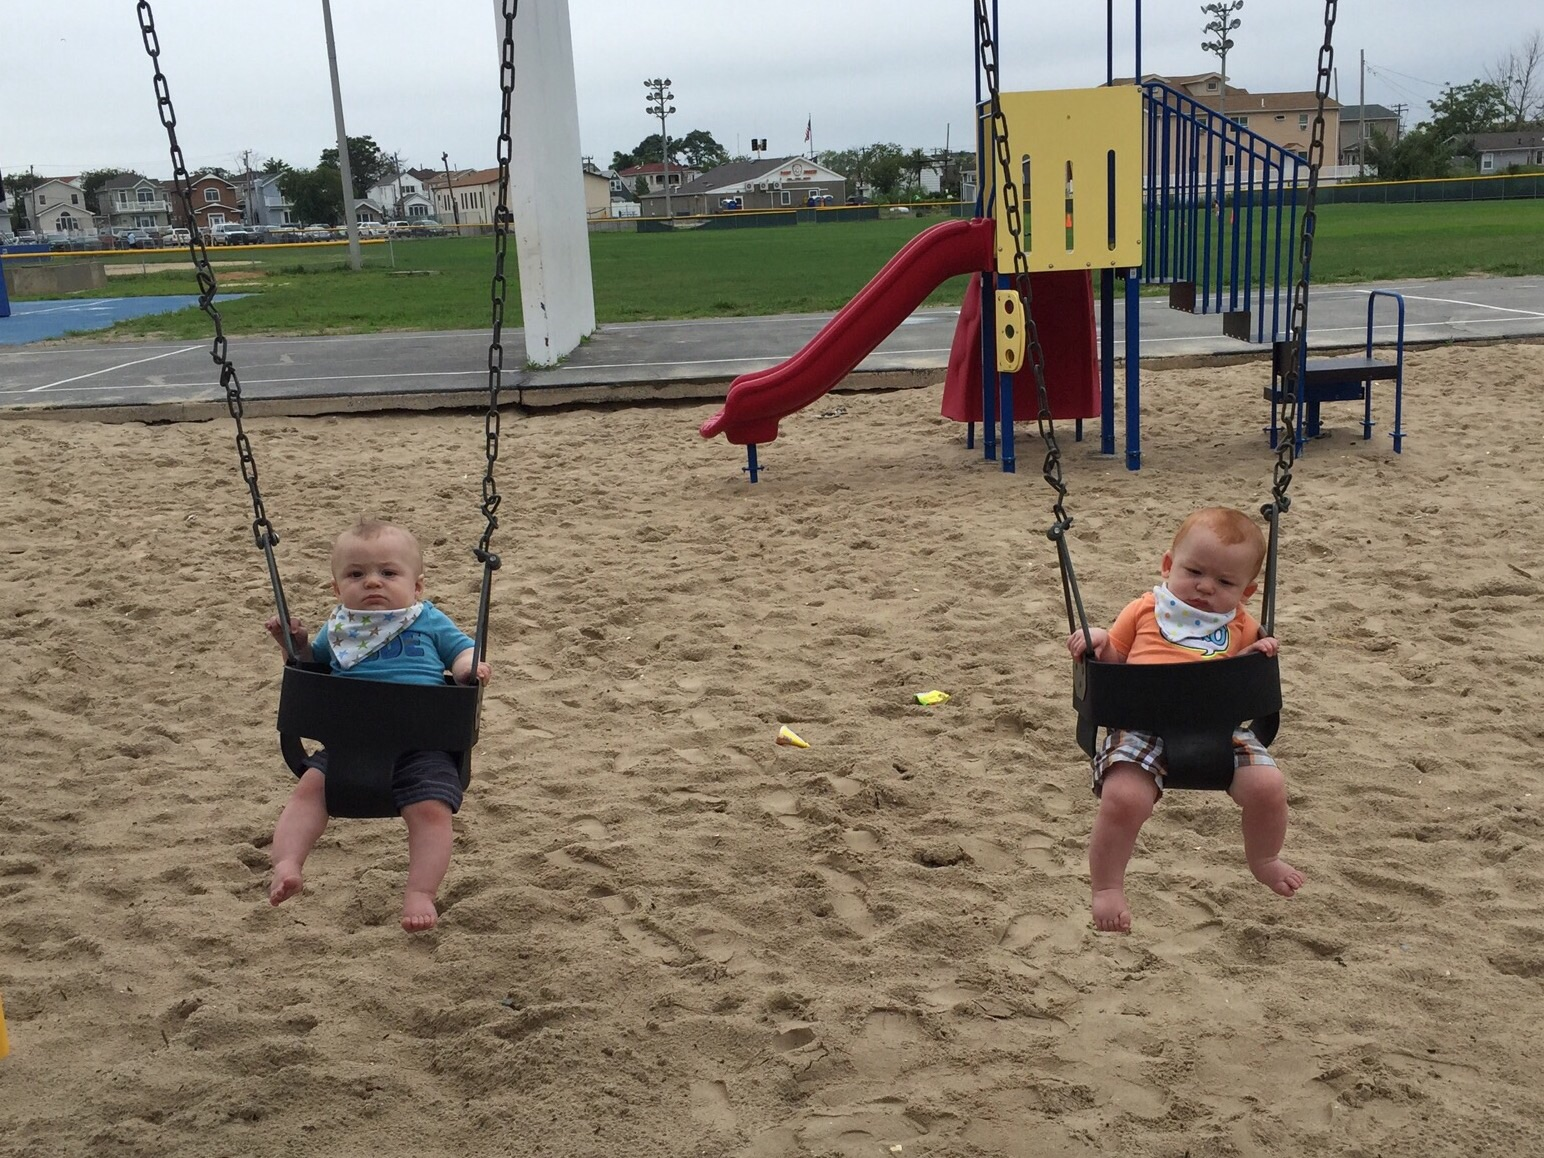 Julian and Joshua were not impressed by the swings.